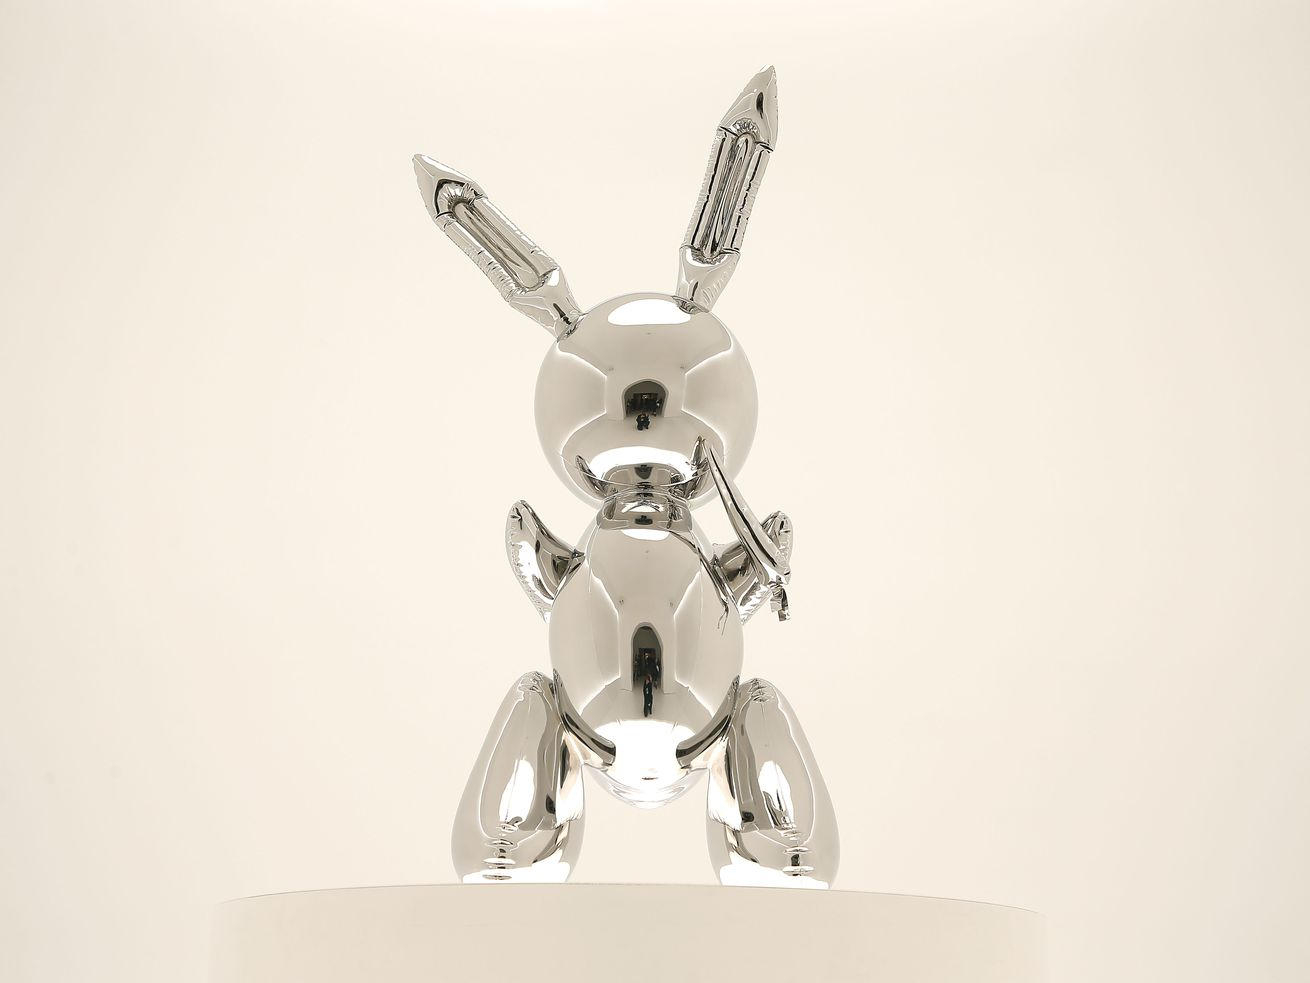 """A sculpture of a"""" Rabbit"""" by Jeff Koons (b.1955) is displayed during the unveiling of highlights from """"20th Century Week"""" at Christie's on May 03, 2019 in New York City. The sculpture sold for $91.1 million."""